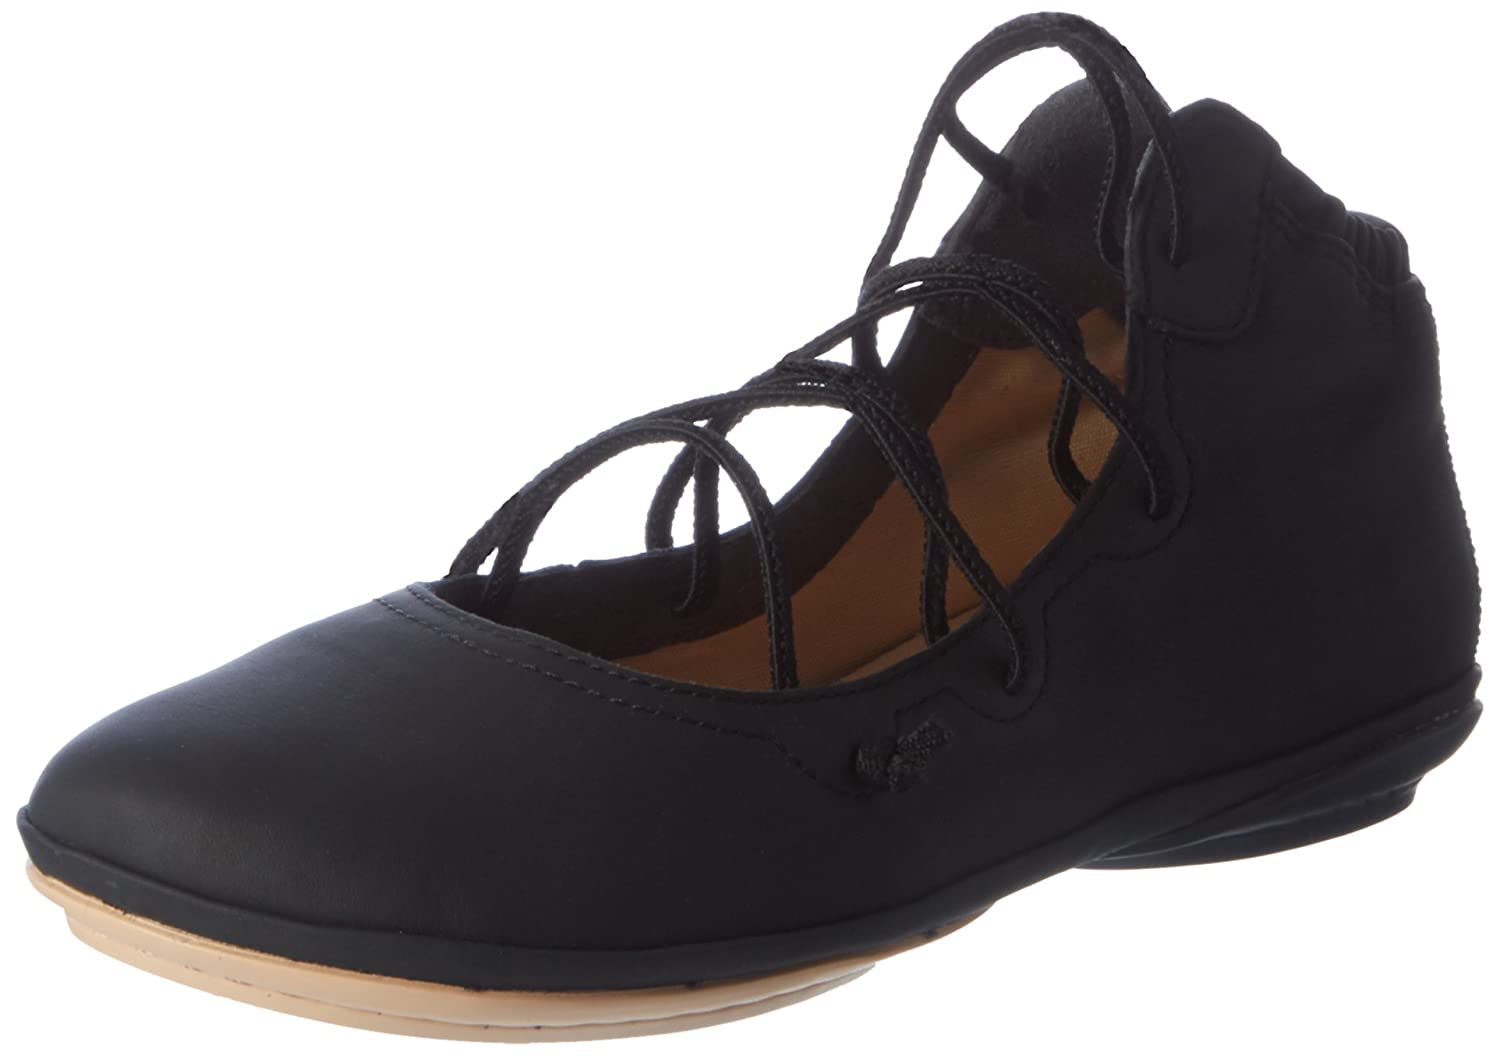 Camper Women's Right Nina K400194 Mary Jane Flat B01IQ28HBC 35 M EU / 5 B(M) US|Black